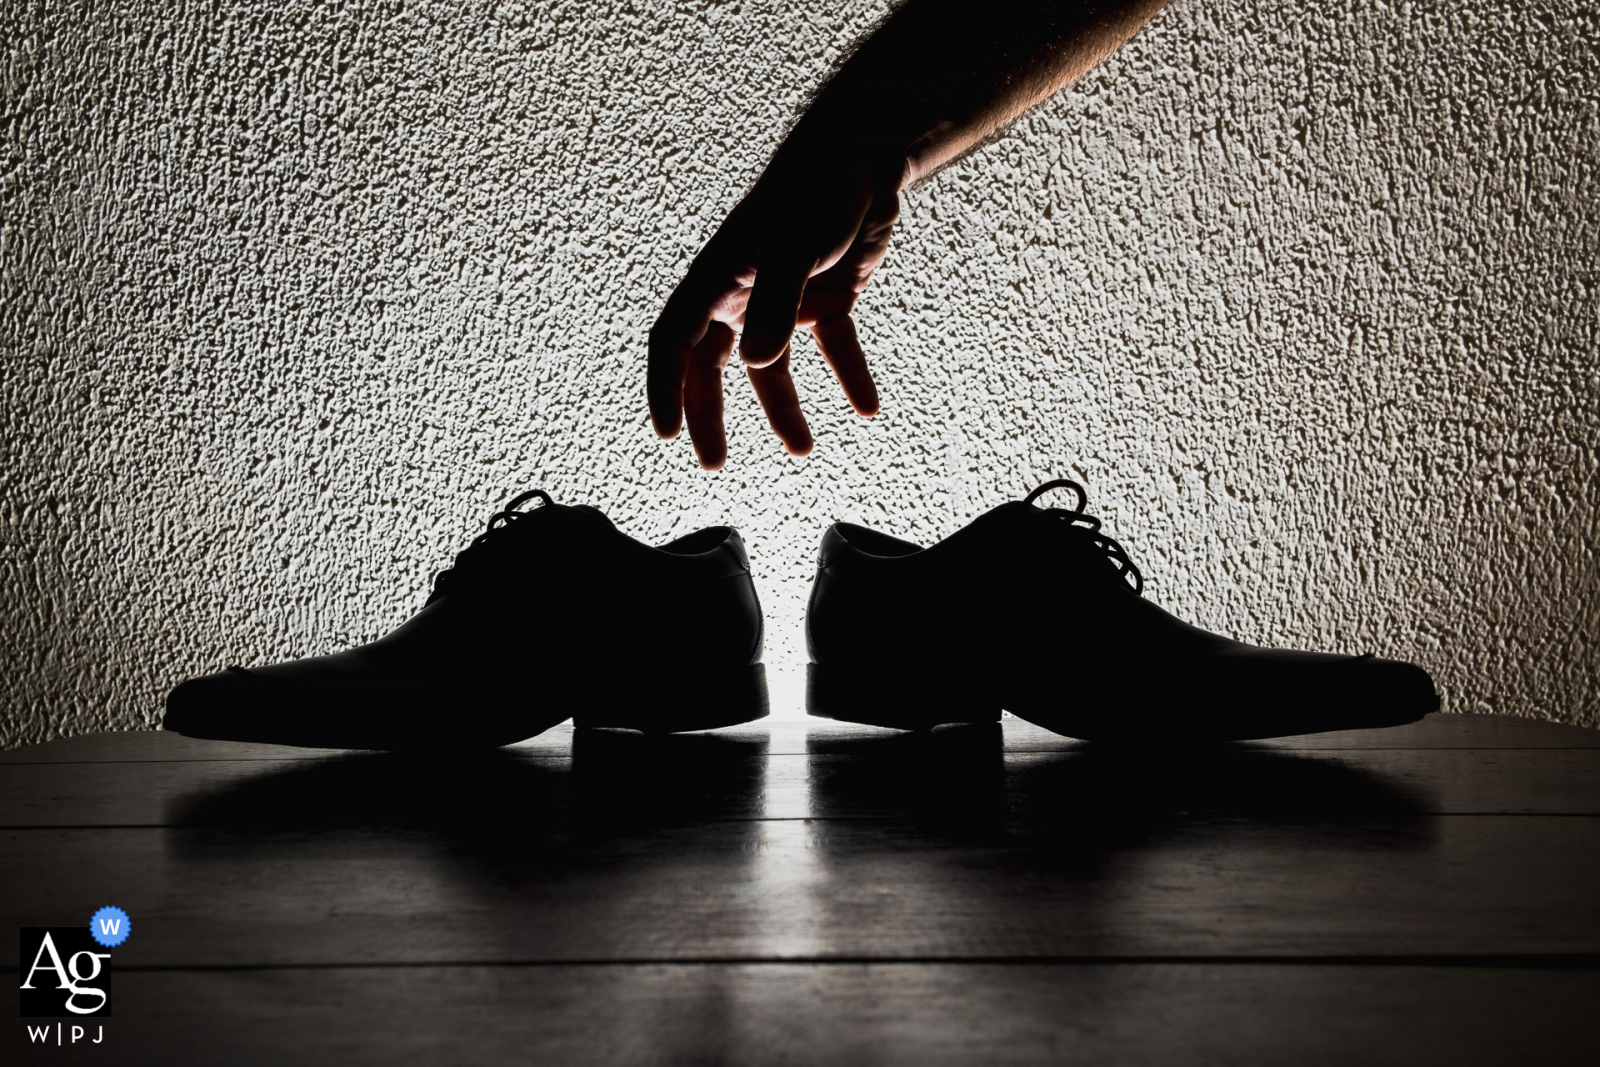 Artistic wedding photography from Hotel Quilombo, União dos Palmares-AL showing a silhouette of the groom's hand picking up his shoes